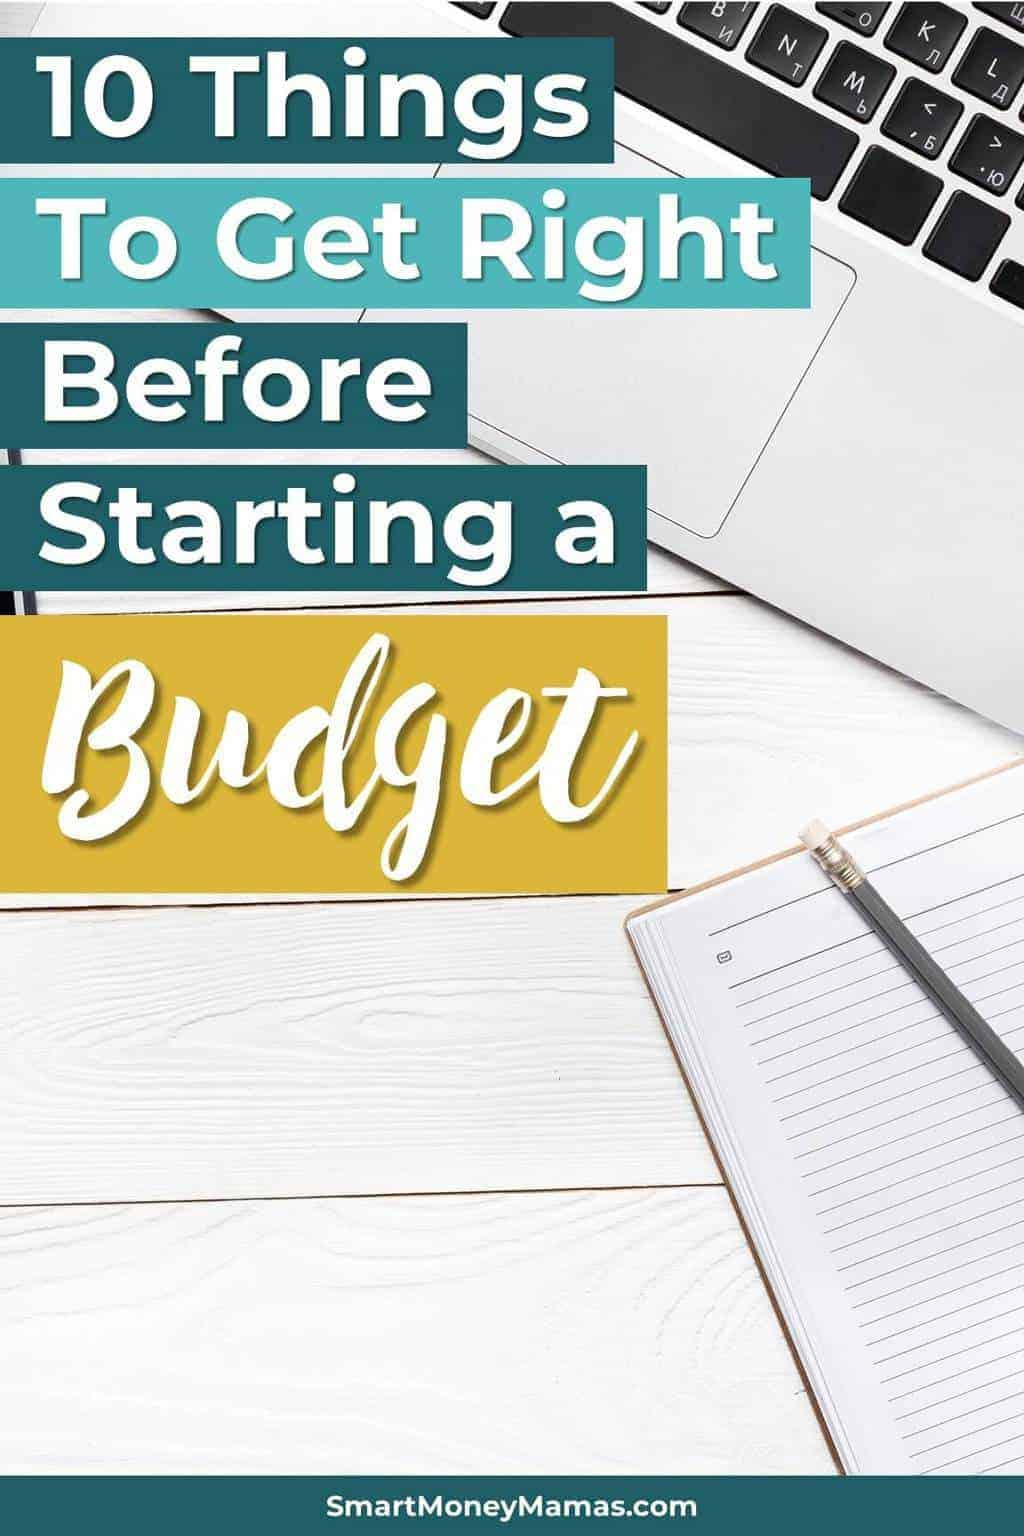 10 Things to Get Right Before Starting a Budget